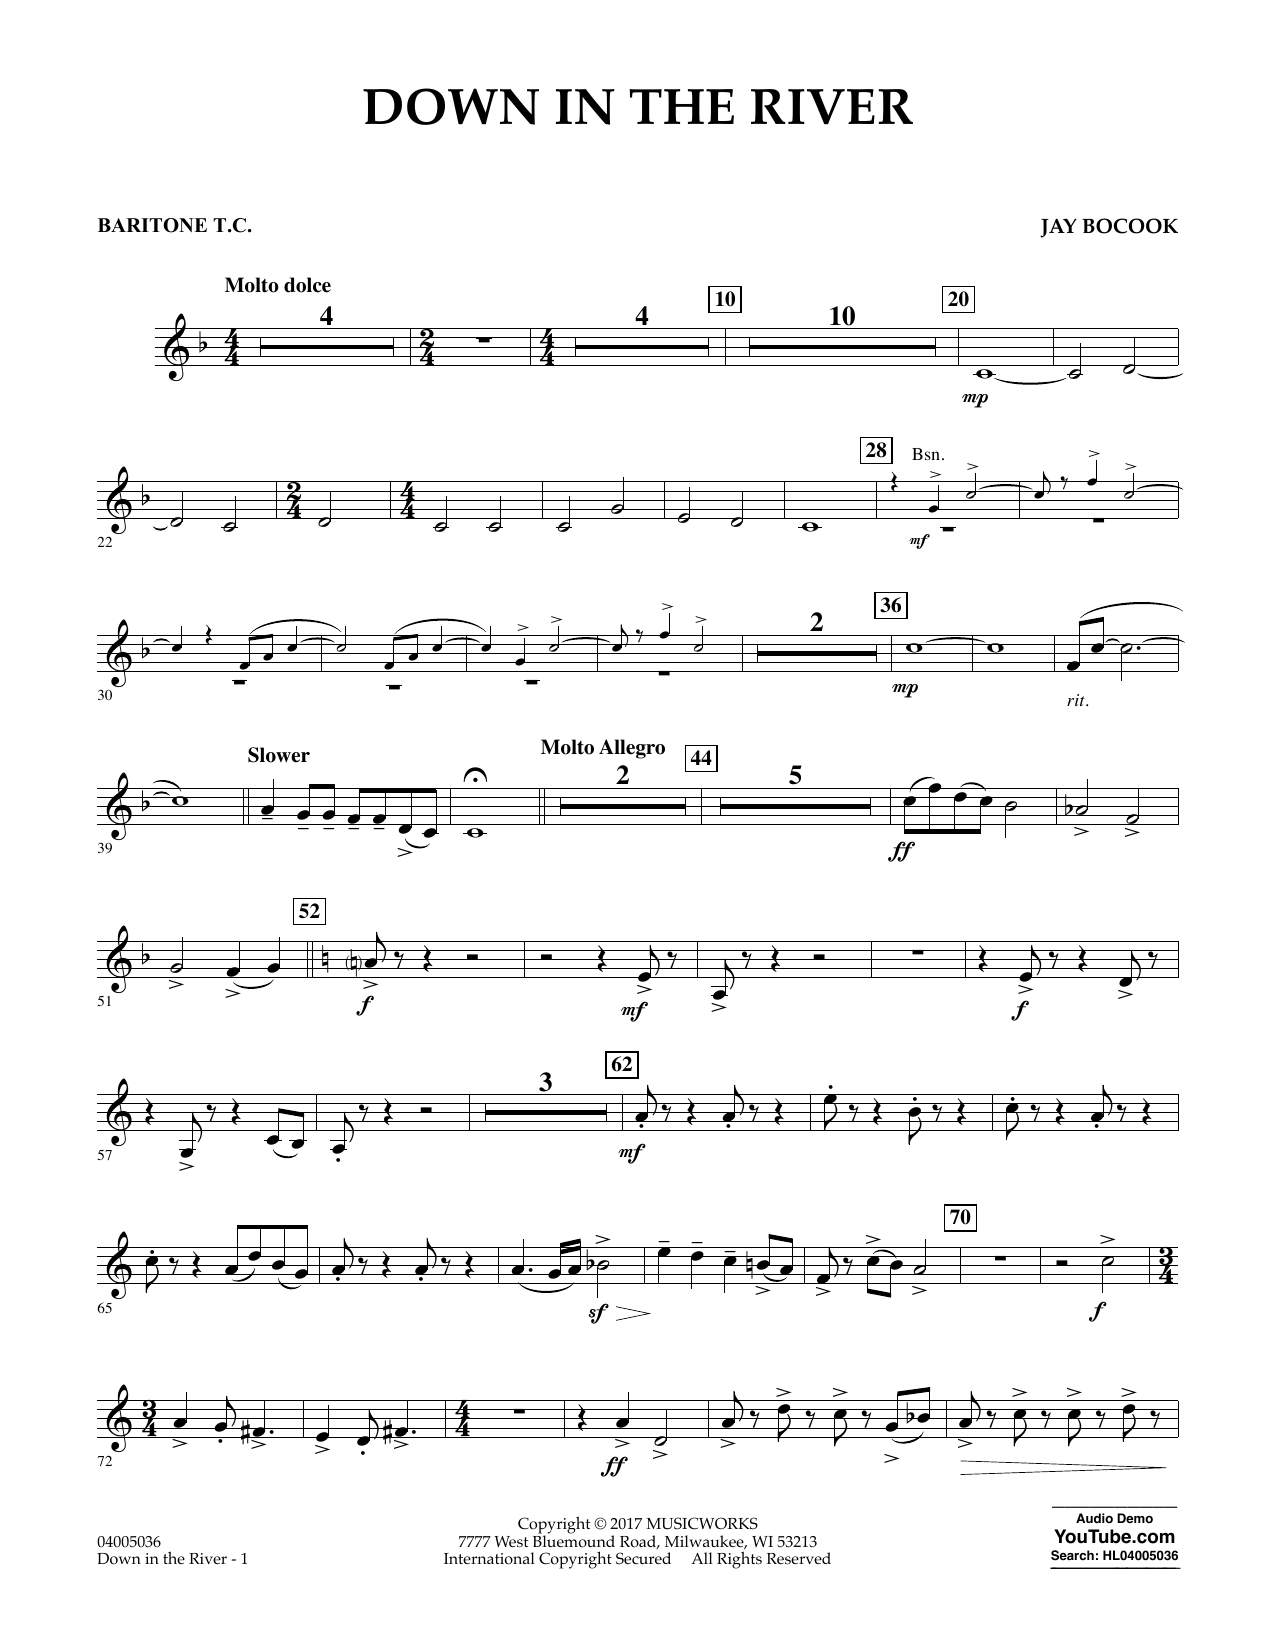 Jay Bocook Down in the River - Baritone T.C. sheet music notes and chords. Download Printable PDF.